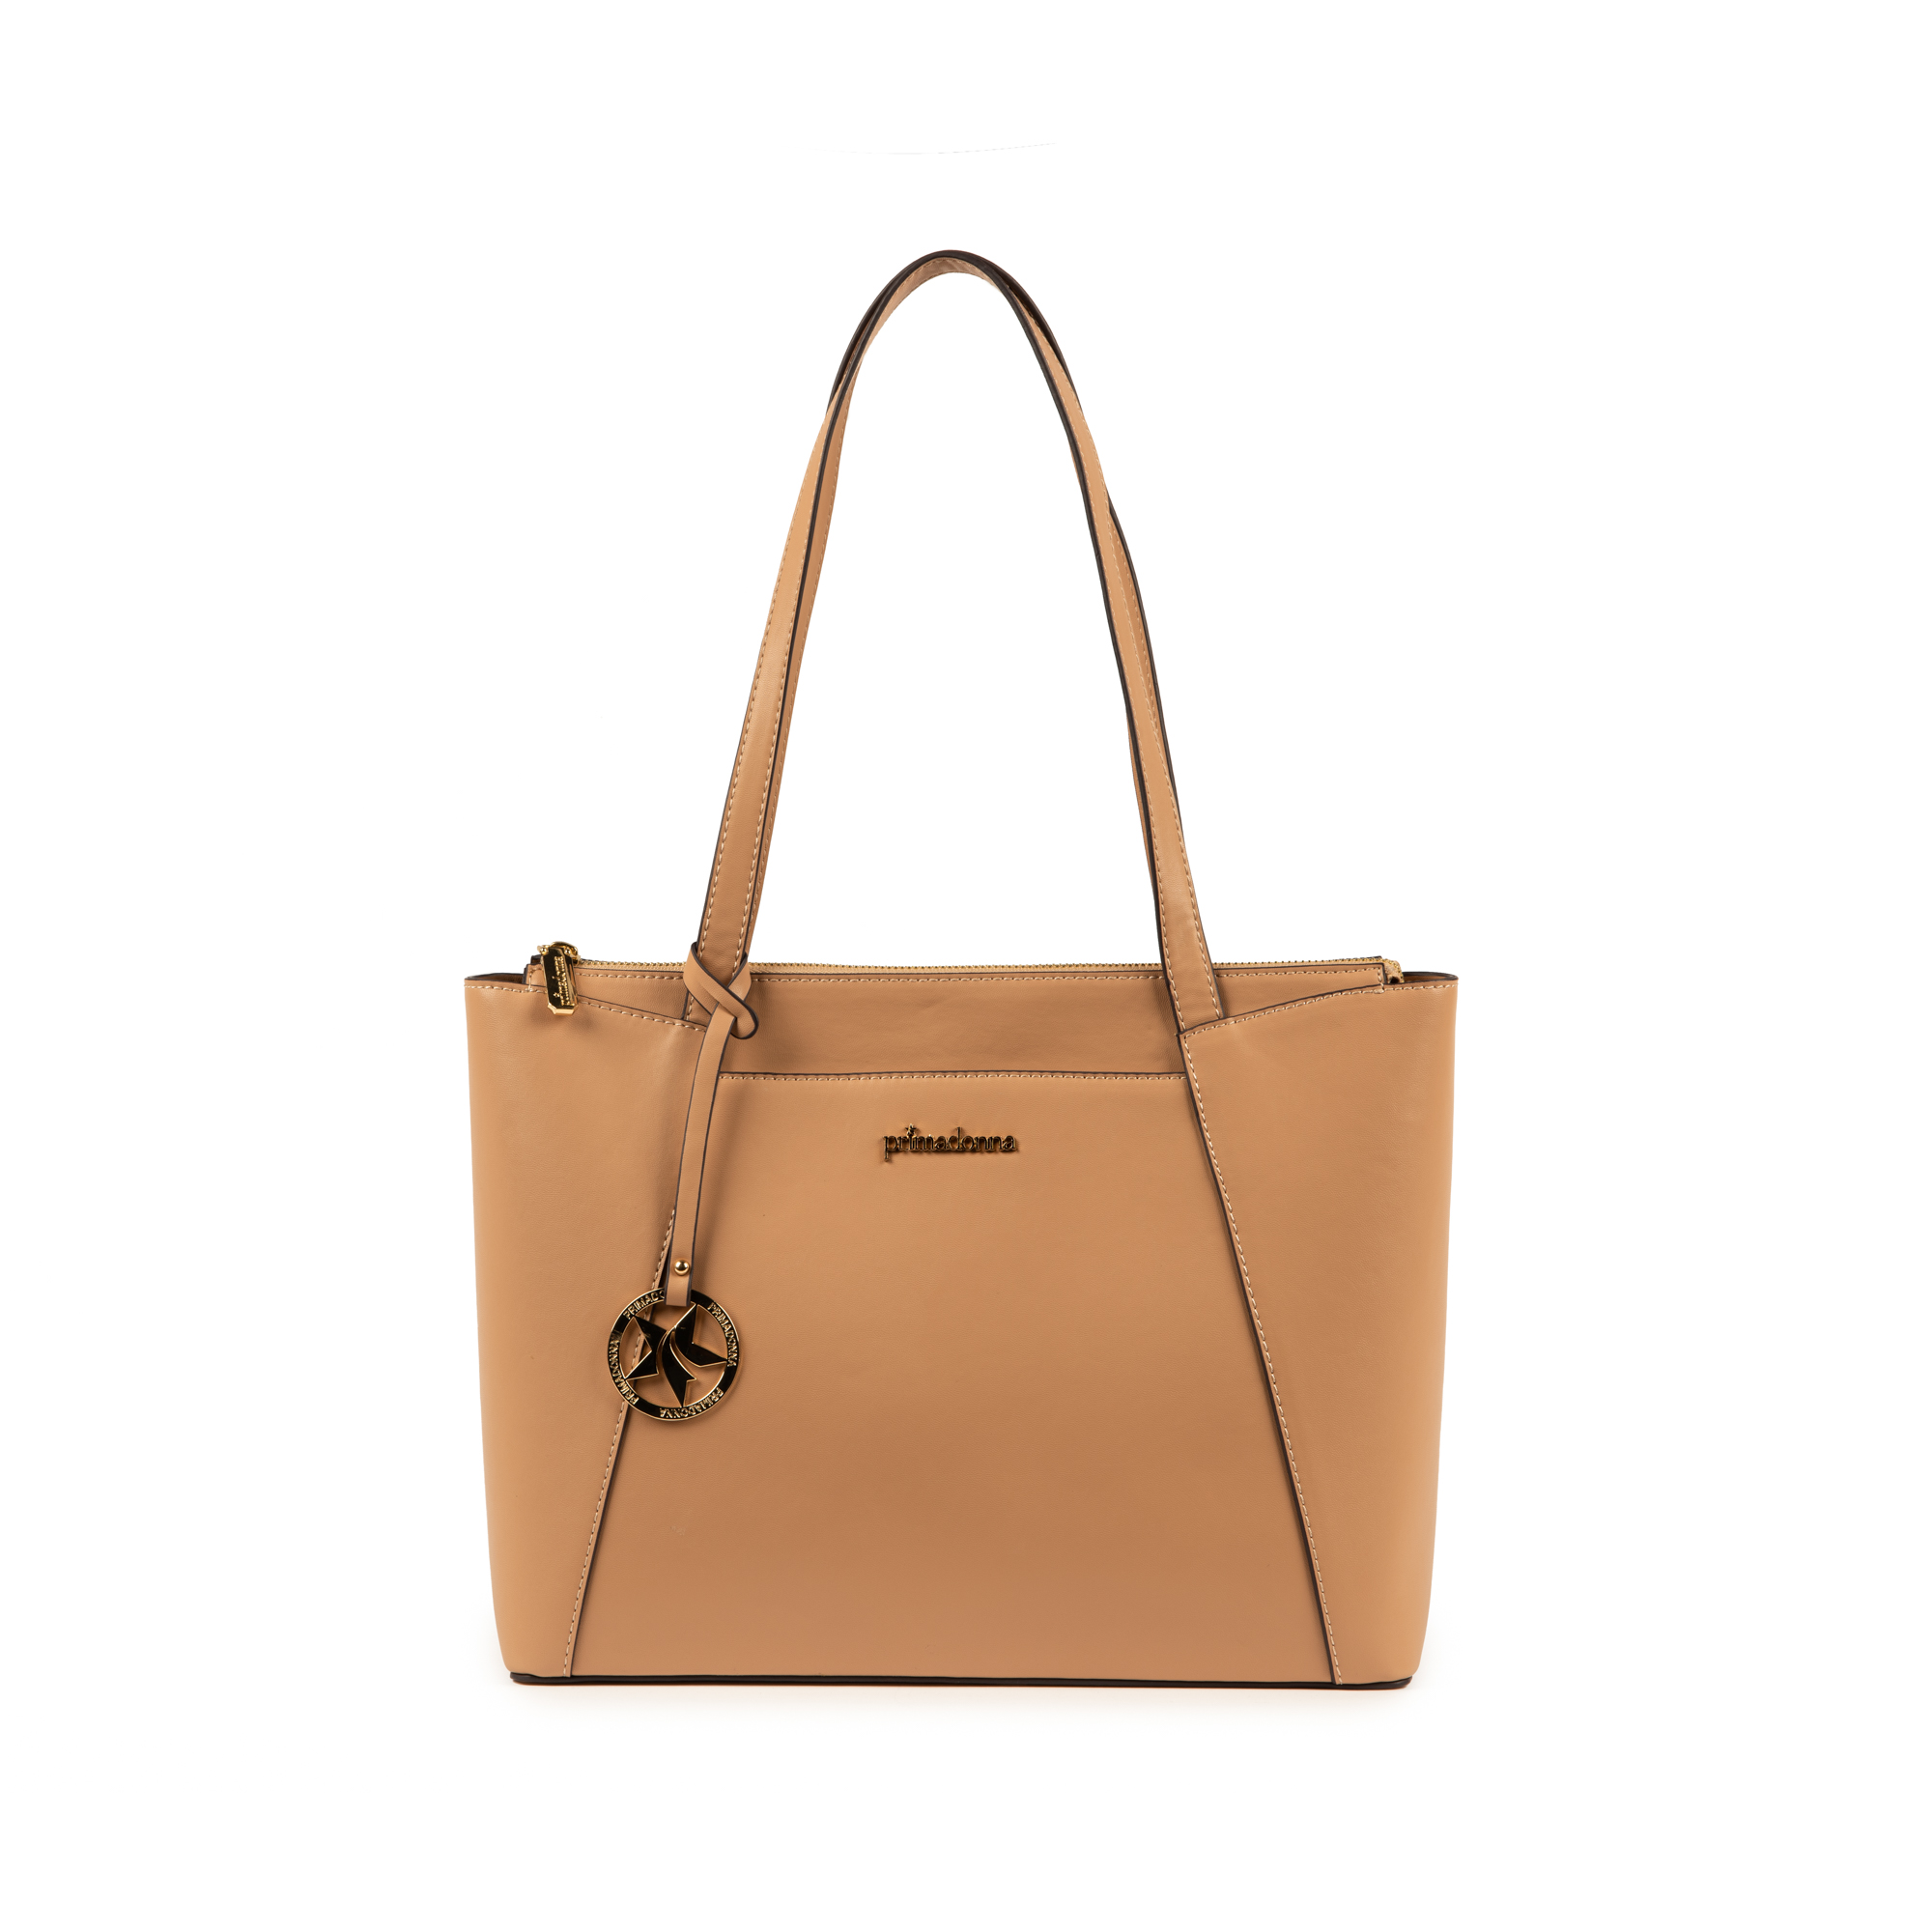 Maxi-bag de ecopiel en color nude